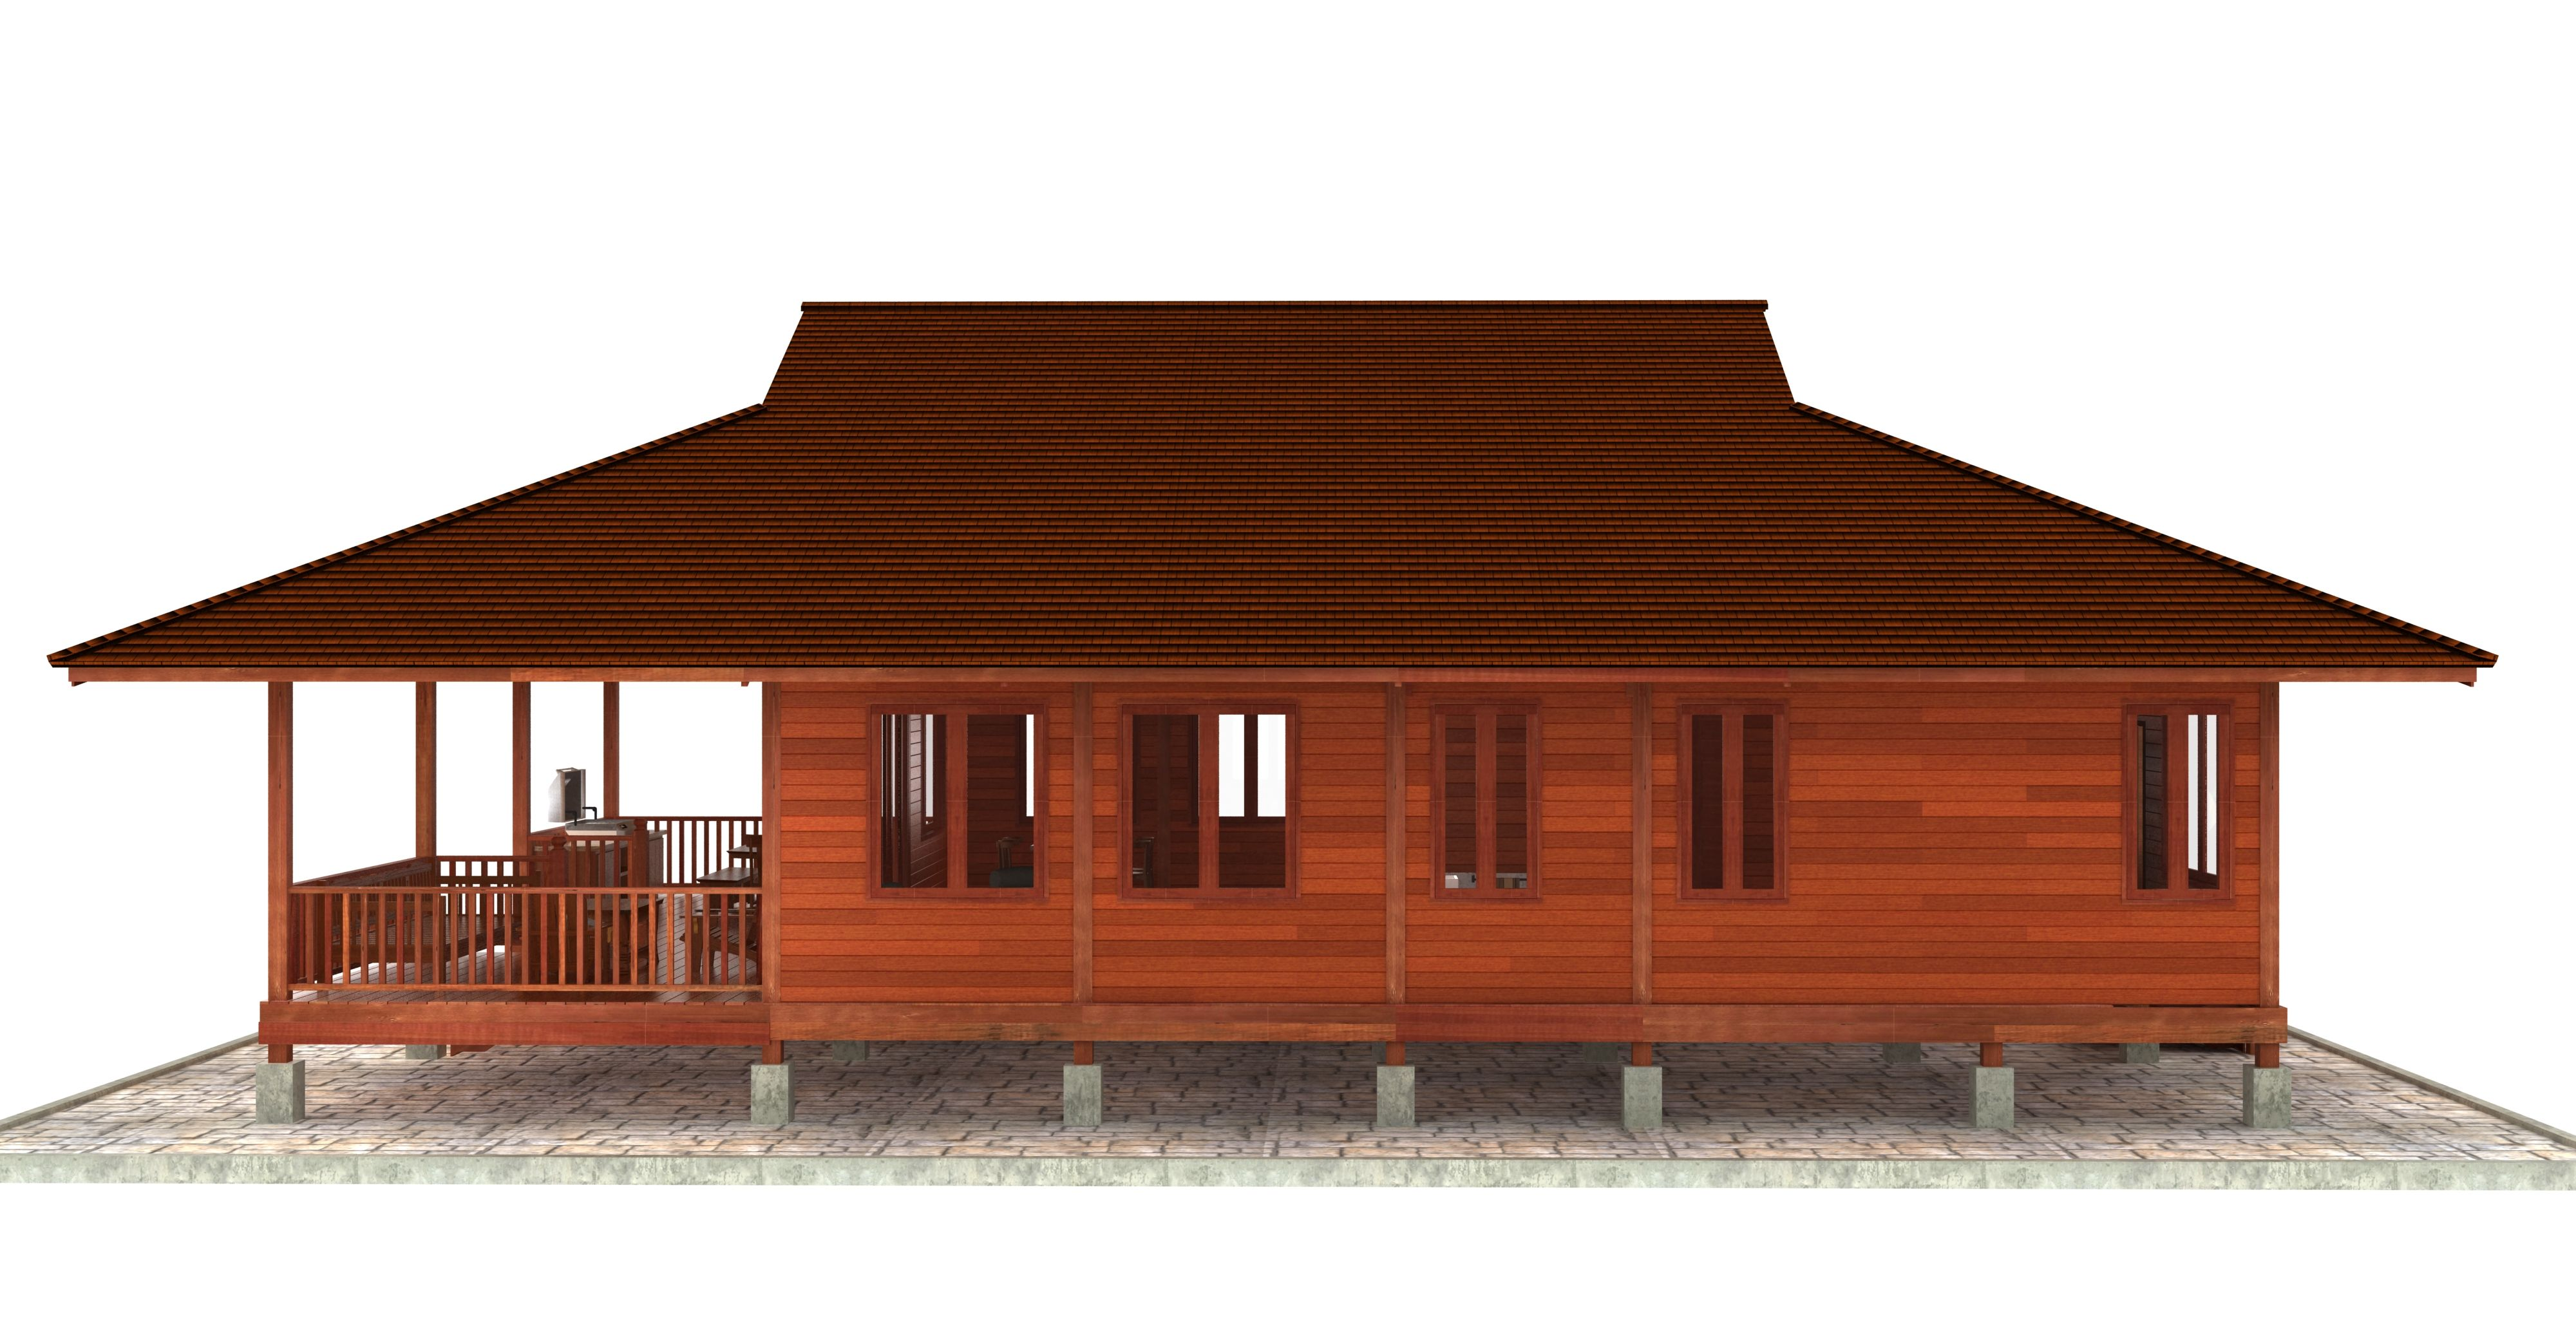 Hawaii Floor Plans Our Talented Design Team Can Realize Your Vision We Create Innovative Bali Sty Tropical House Design Small House Design Wood House Design